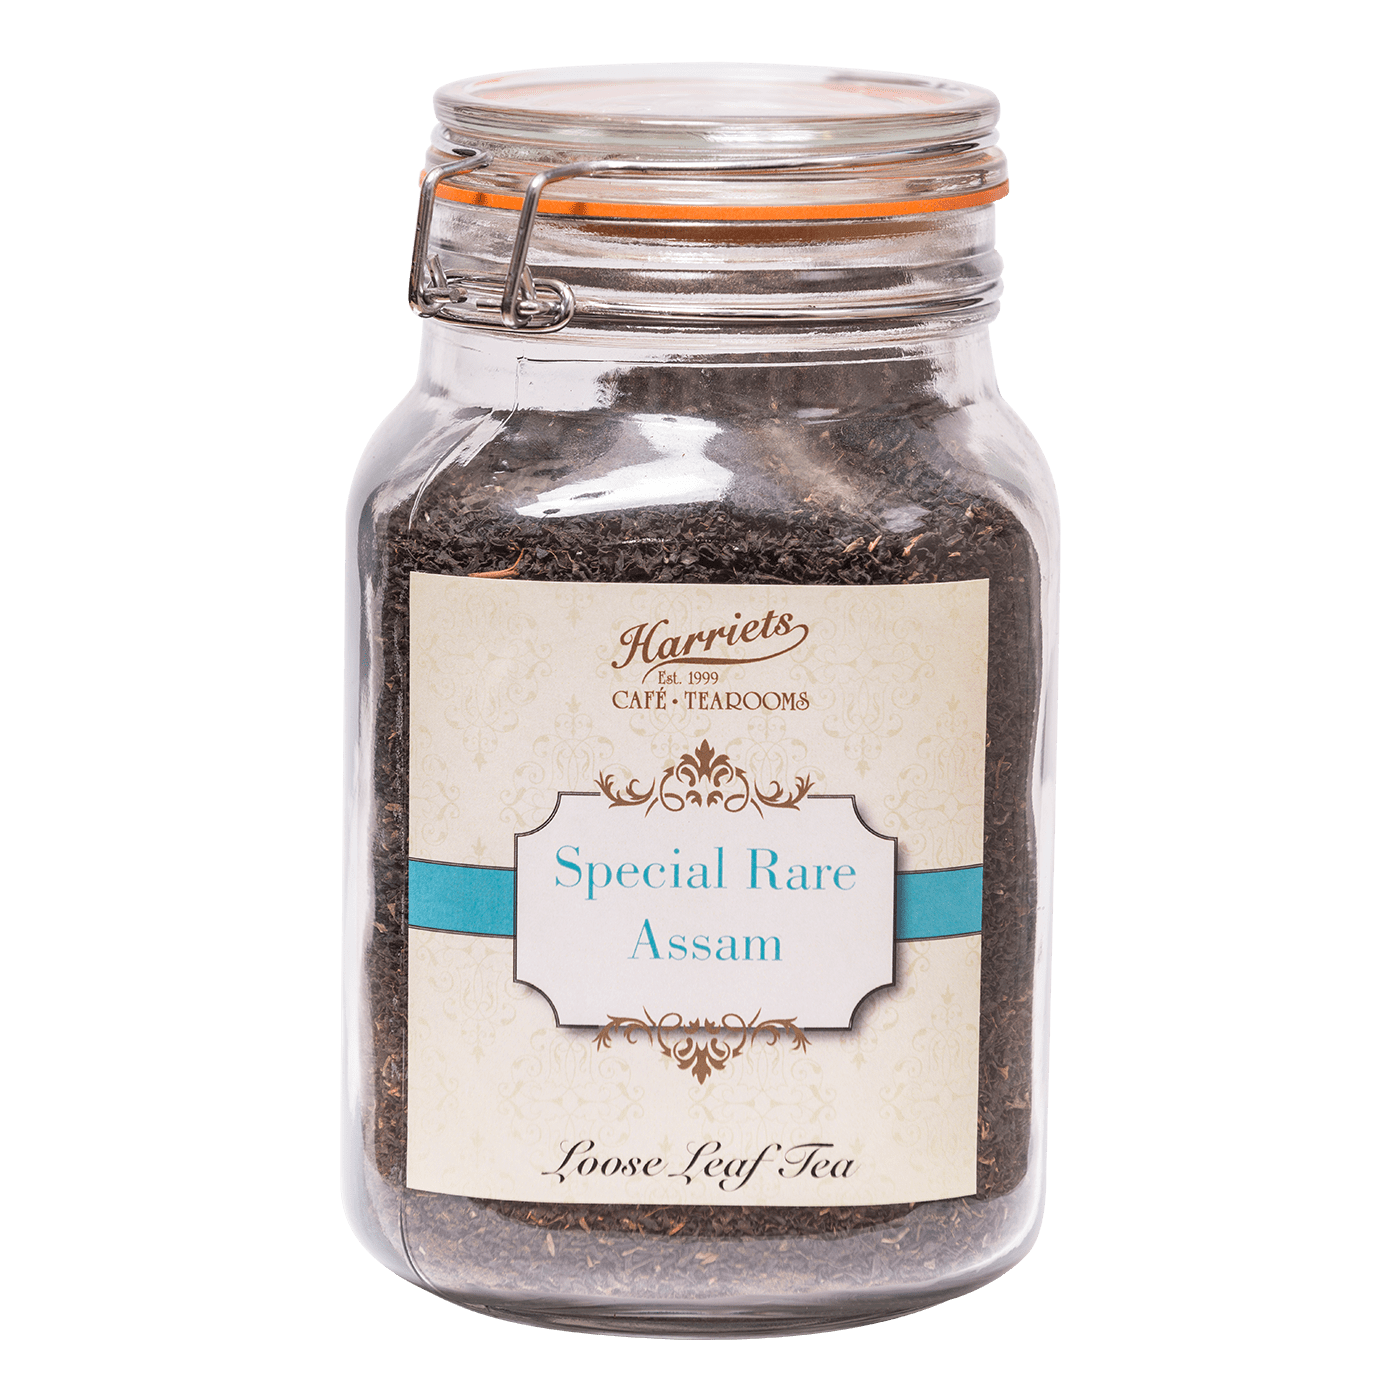 Special Rare Assam Loose Leaf Tea